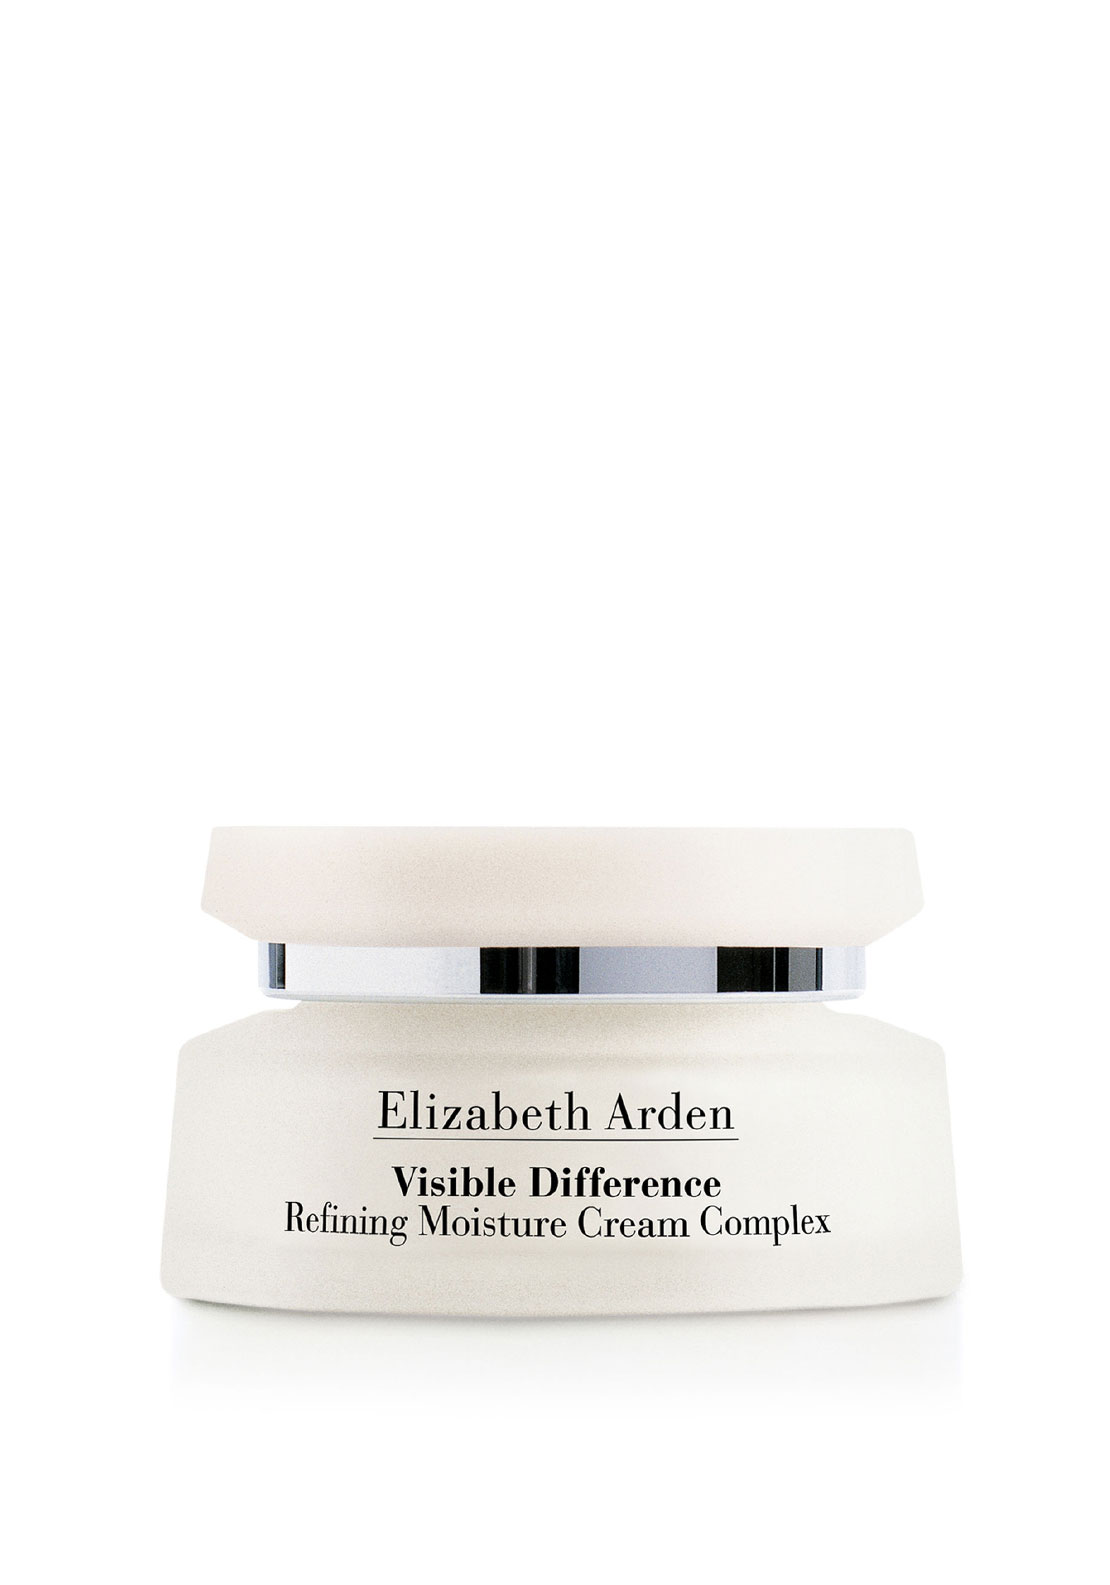 Elizabeth Arden Visible Difference Refining Moisture Cream Complex Twin Pack